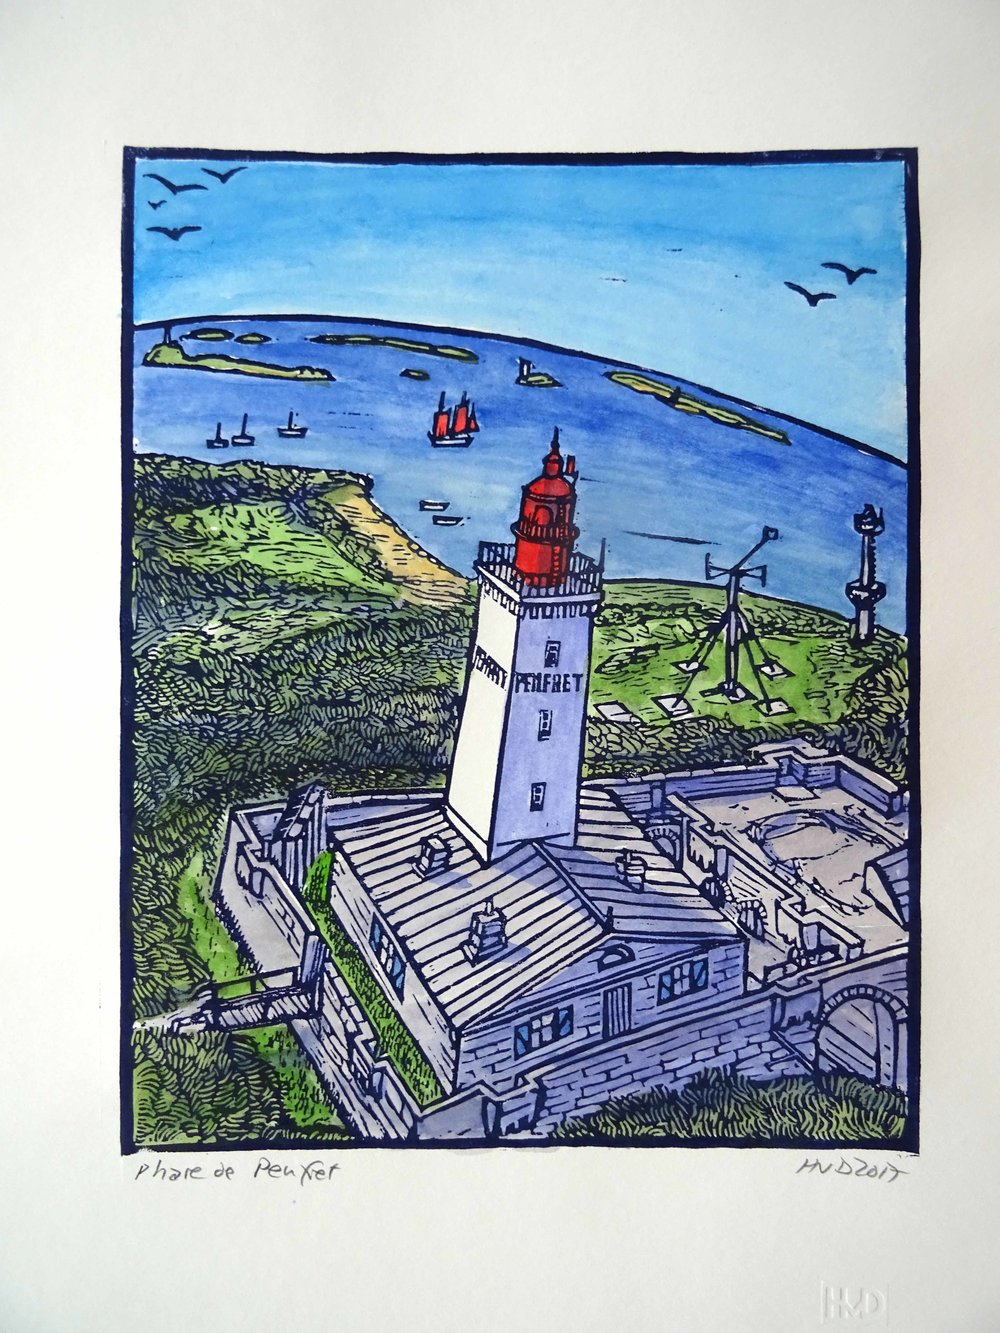 147 - Phare de Penfret, coloured lino, 29x30 cm, 100 €